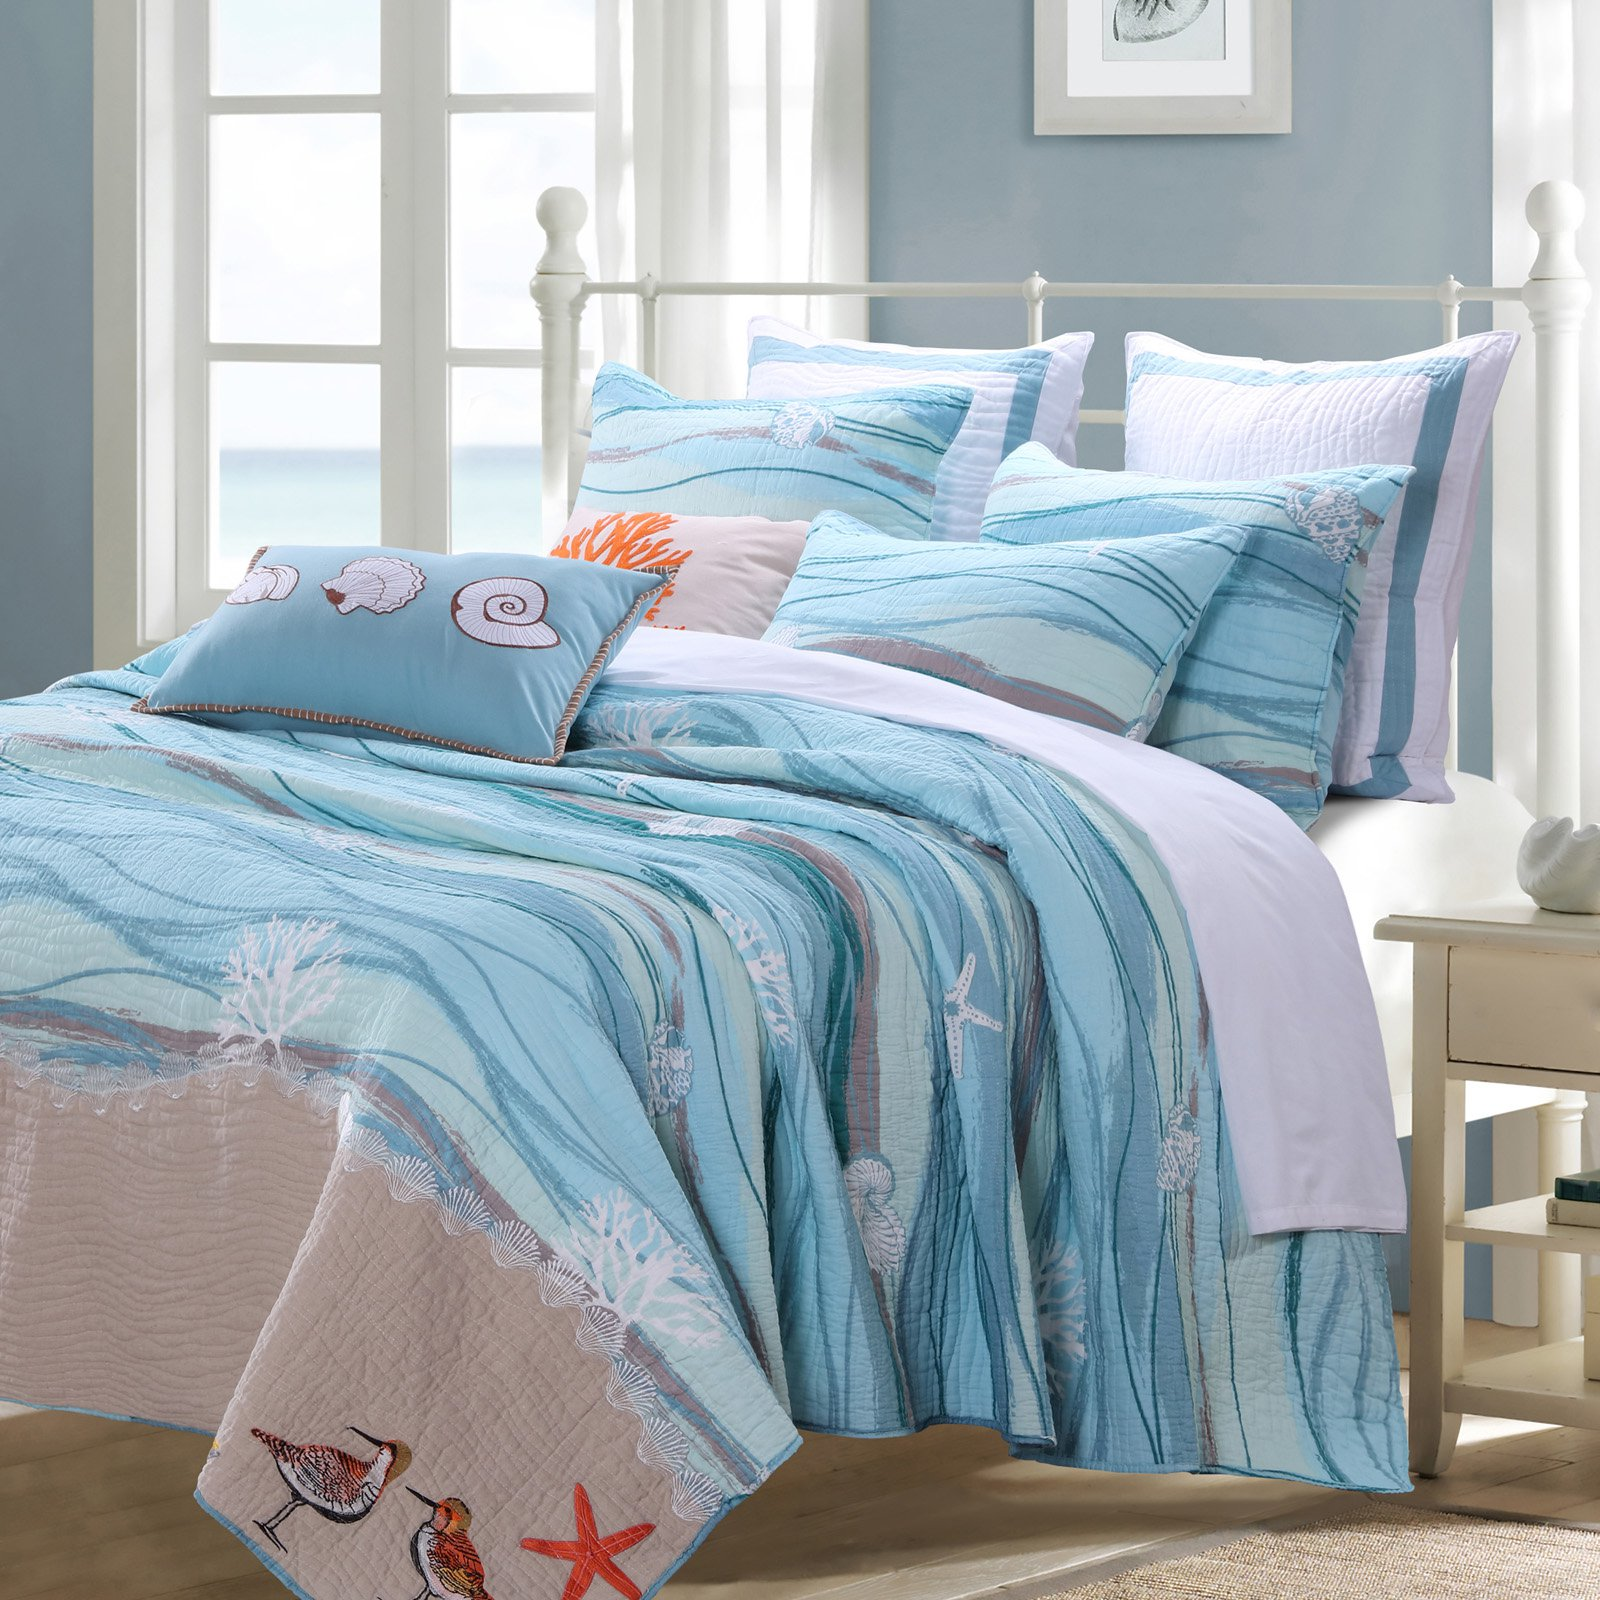 Maui Bonus Quilt Set by Greenland by Greenland Home Fashions